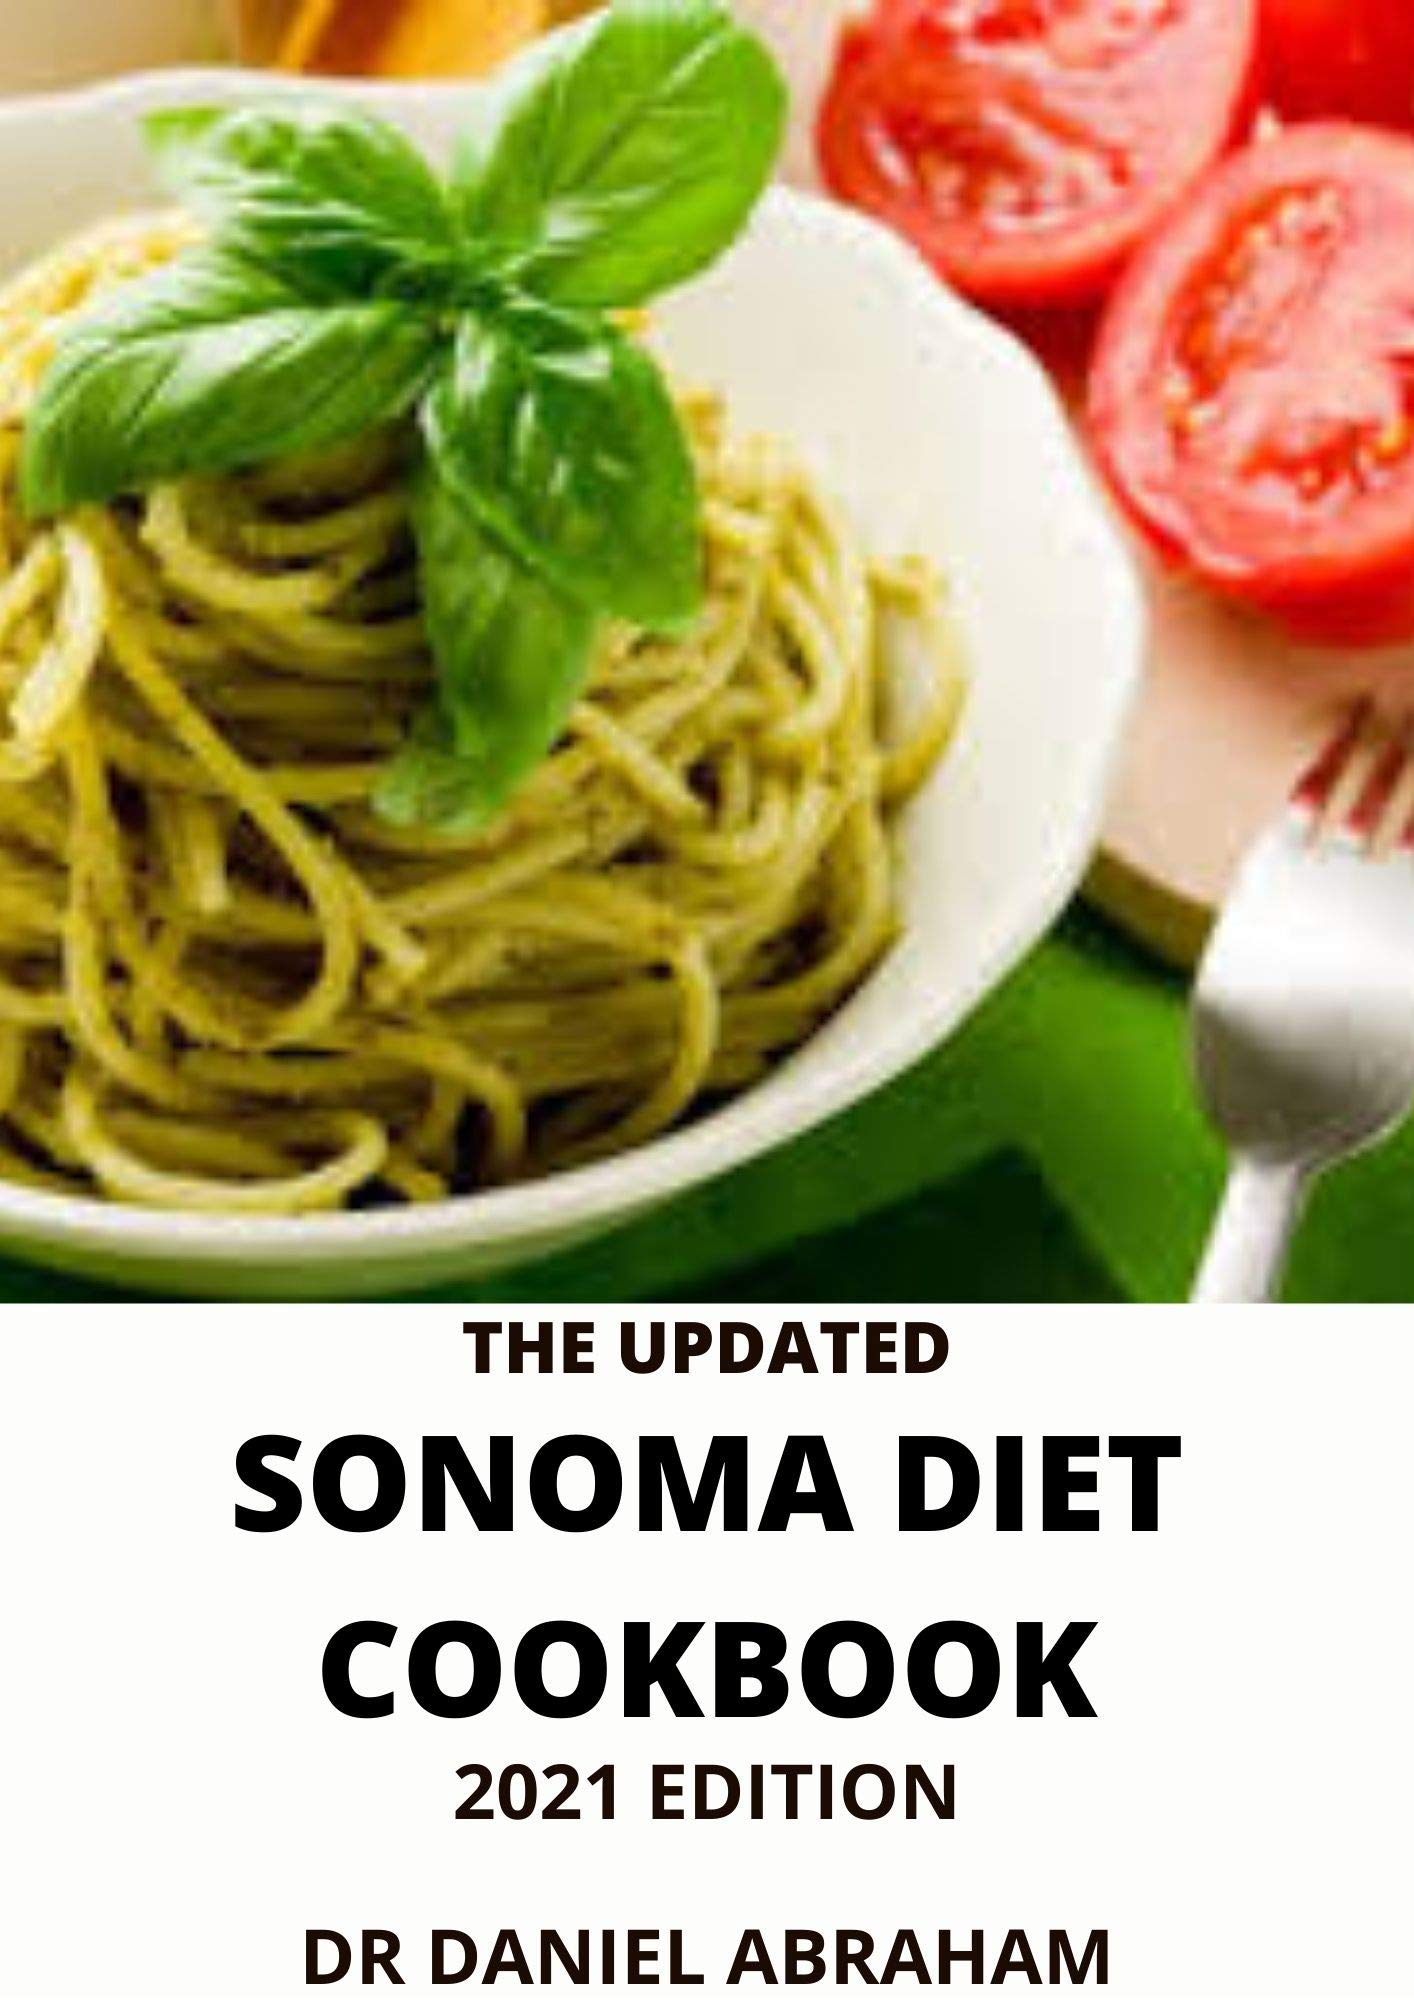 THE UPDATED SONOMA DIET COOKBOOK.2021 EDITION